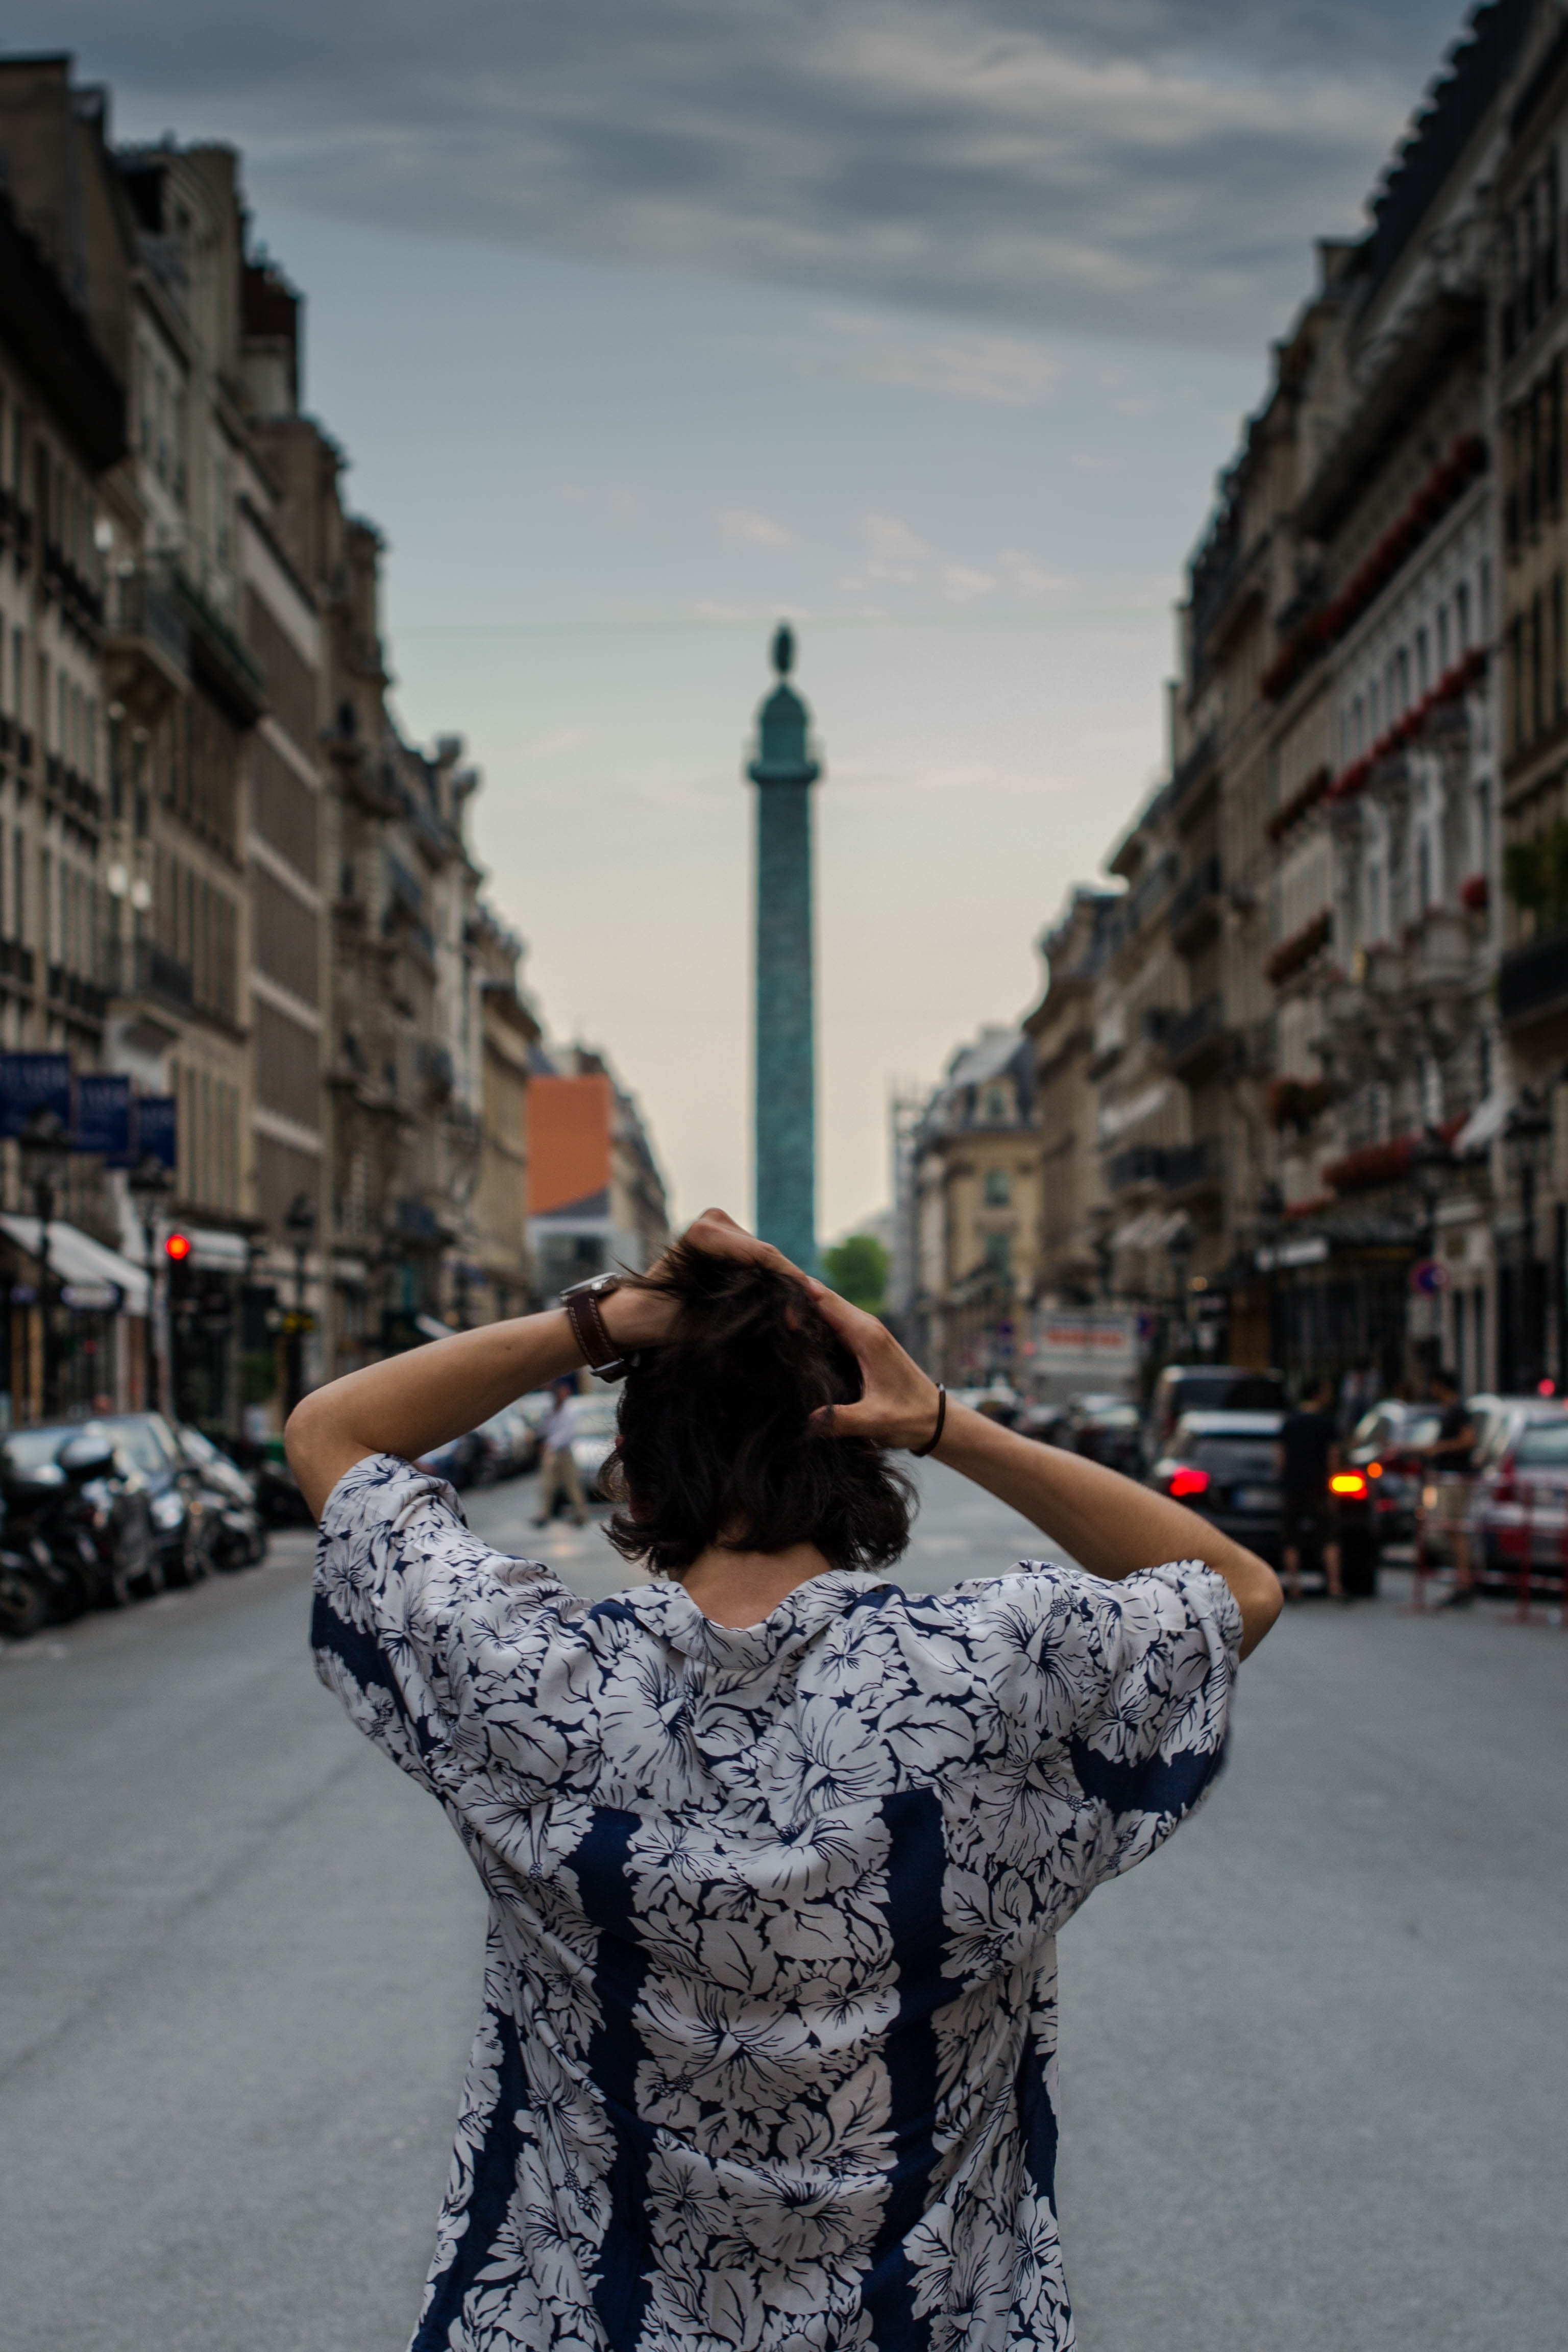 A person facing away from the camera looks down a street toward a monument in Paris